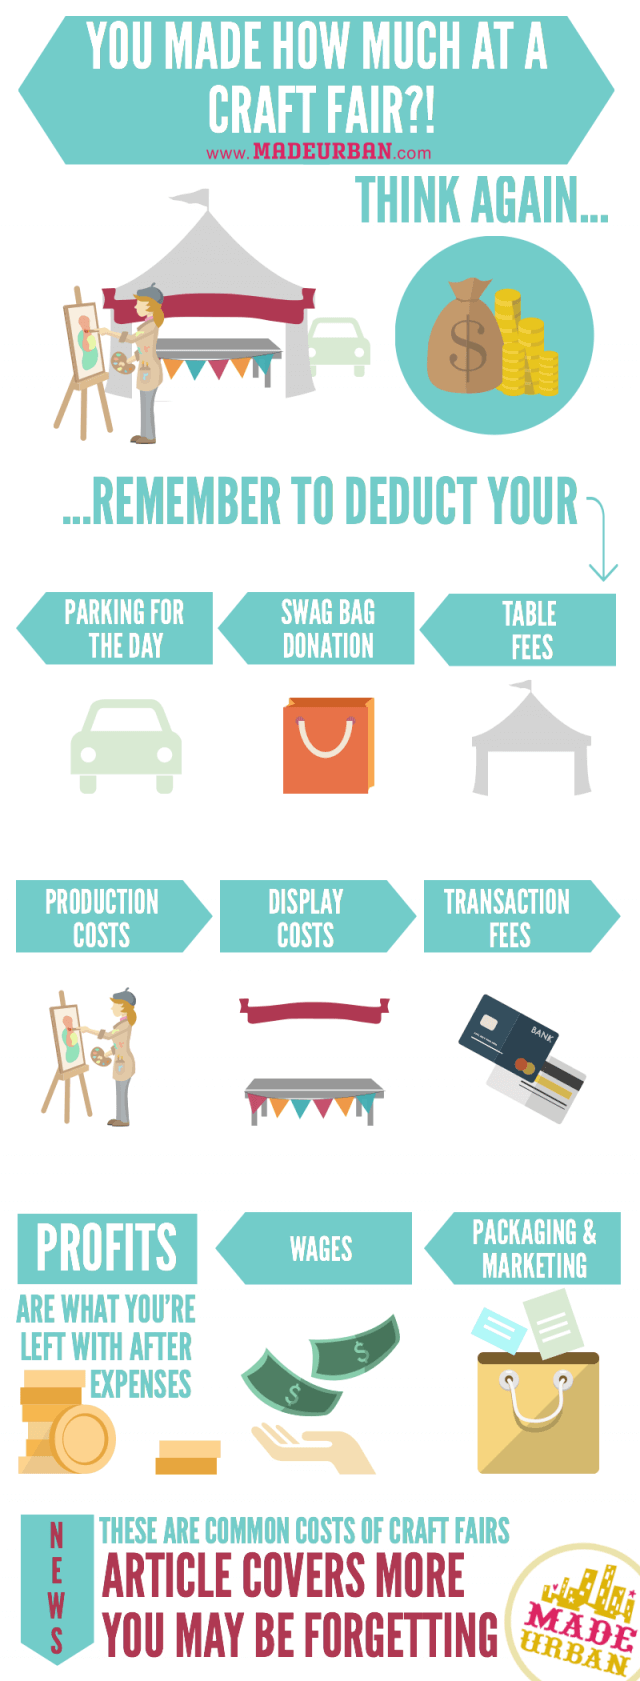 How Much Profit Does your Handmade Business Make?